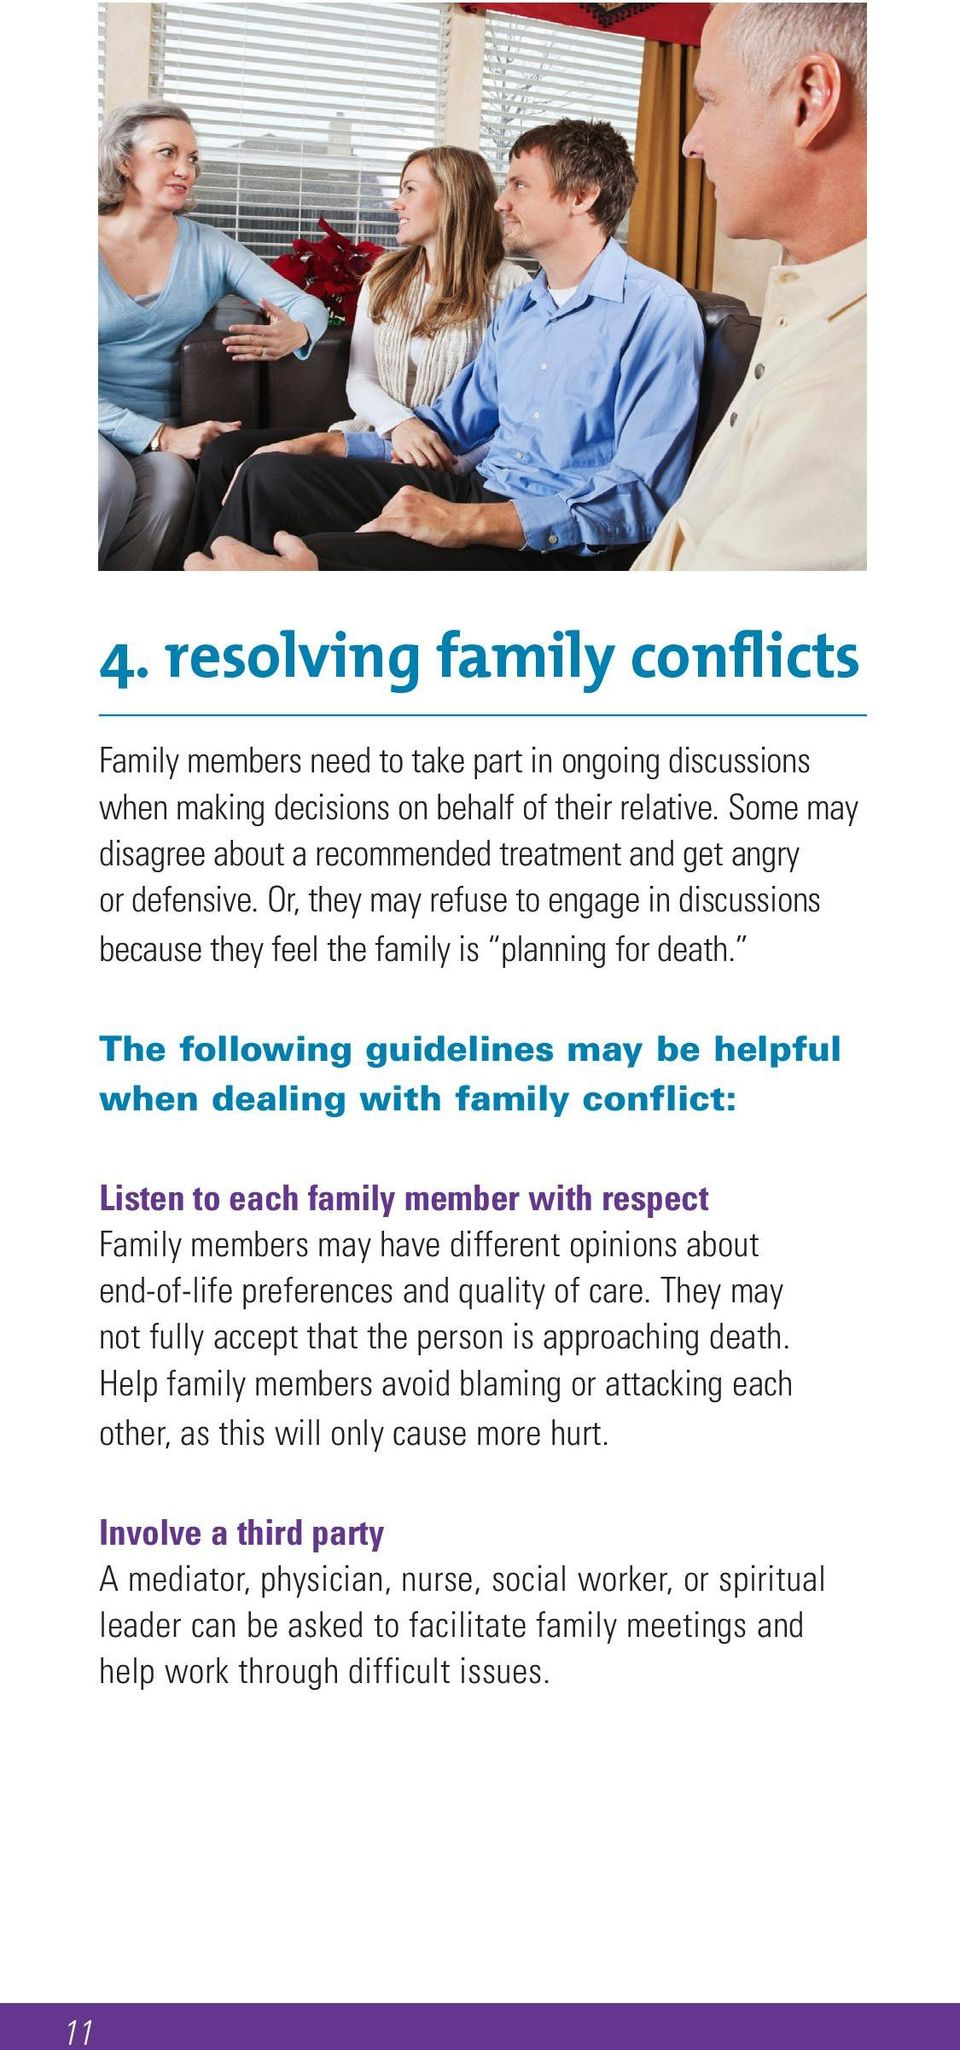 The following guidelines may be helpful when dealing with family conflict: Listen to each family member with respect Family members may have different opinions about end-of-life preferences and